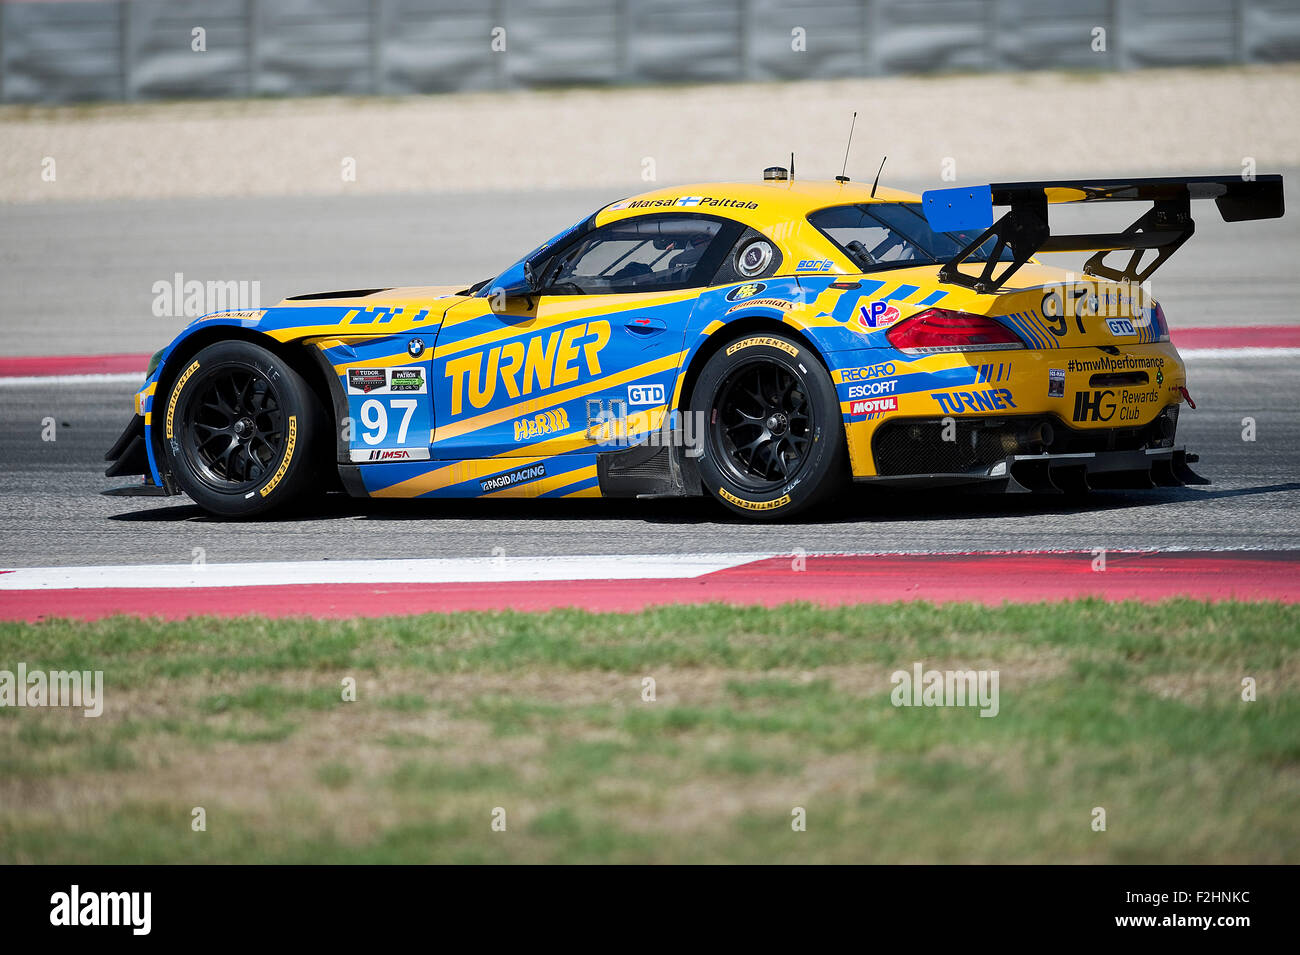 Austin, Texas, USA. 19th Sep, 2015. Marsal And Paltala #97 BMW Z4 Racing  The TUDOR United Sports Car Championship At Lone Star Le Mans, Circuit Of  The ...